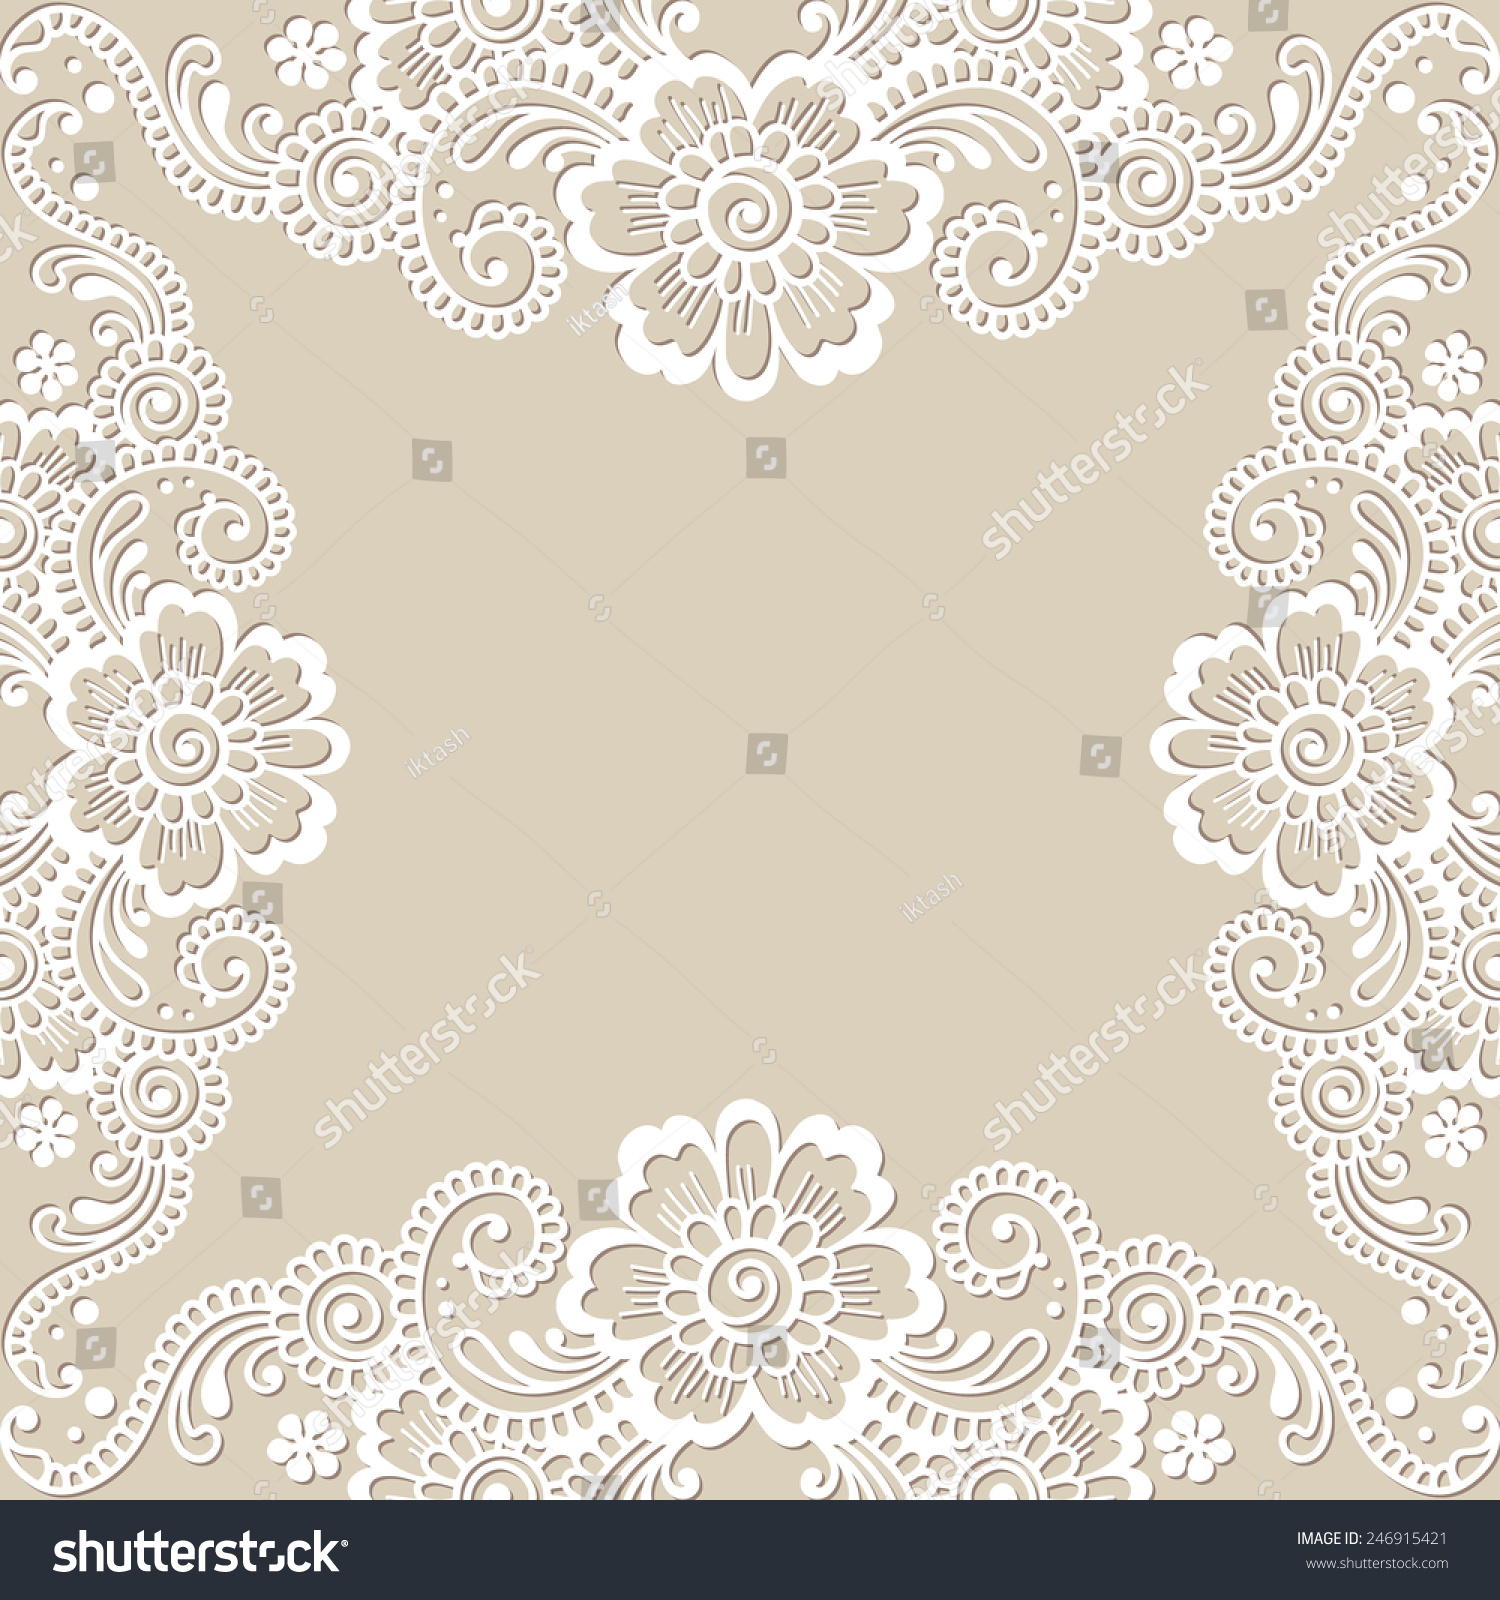 White Flower Frame Lace Ornament Vector Illustration Ez Canvas